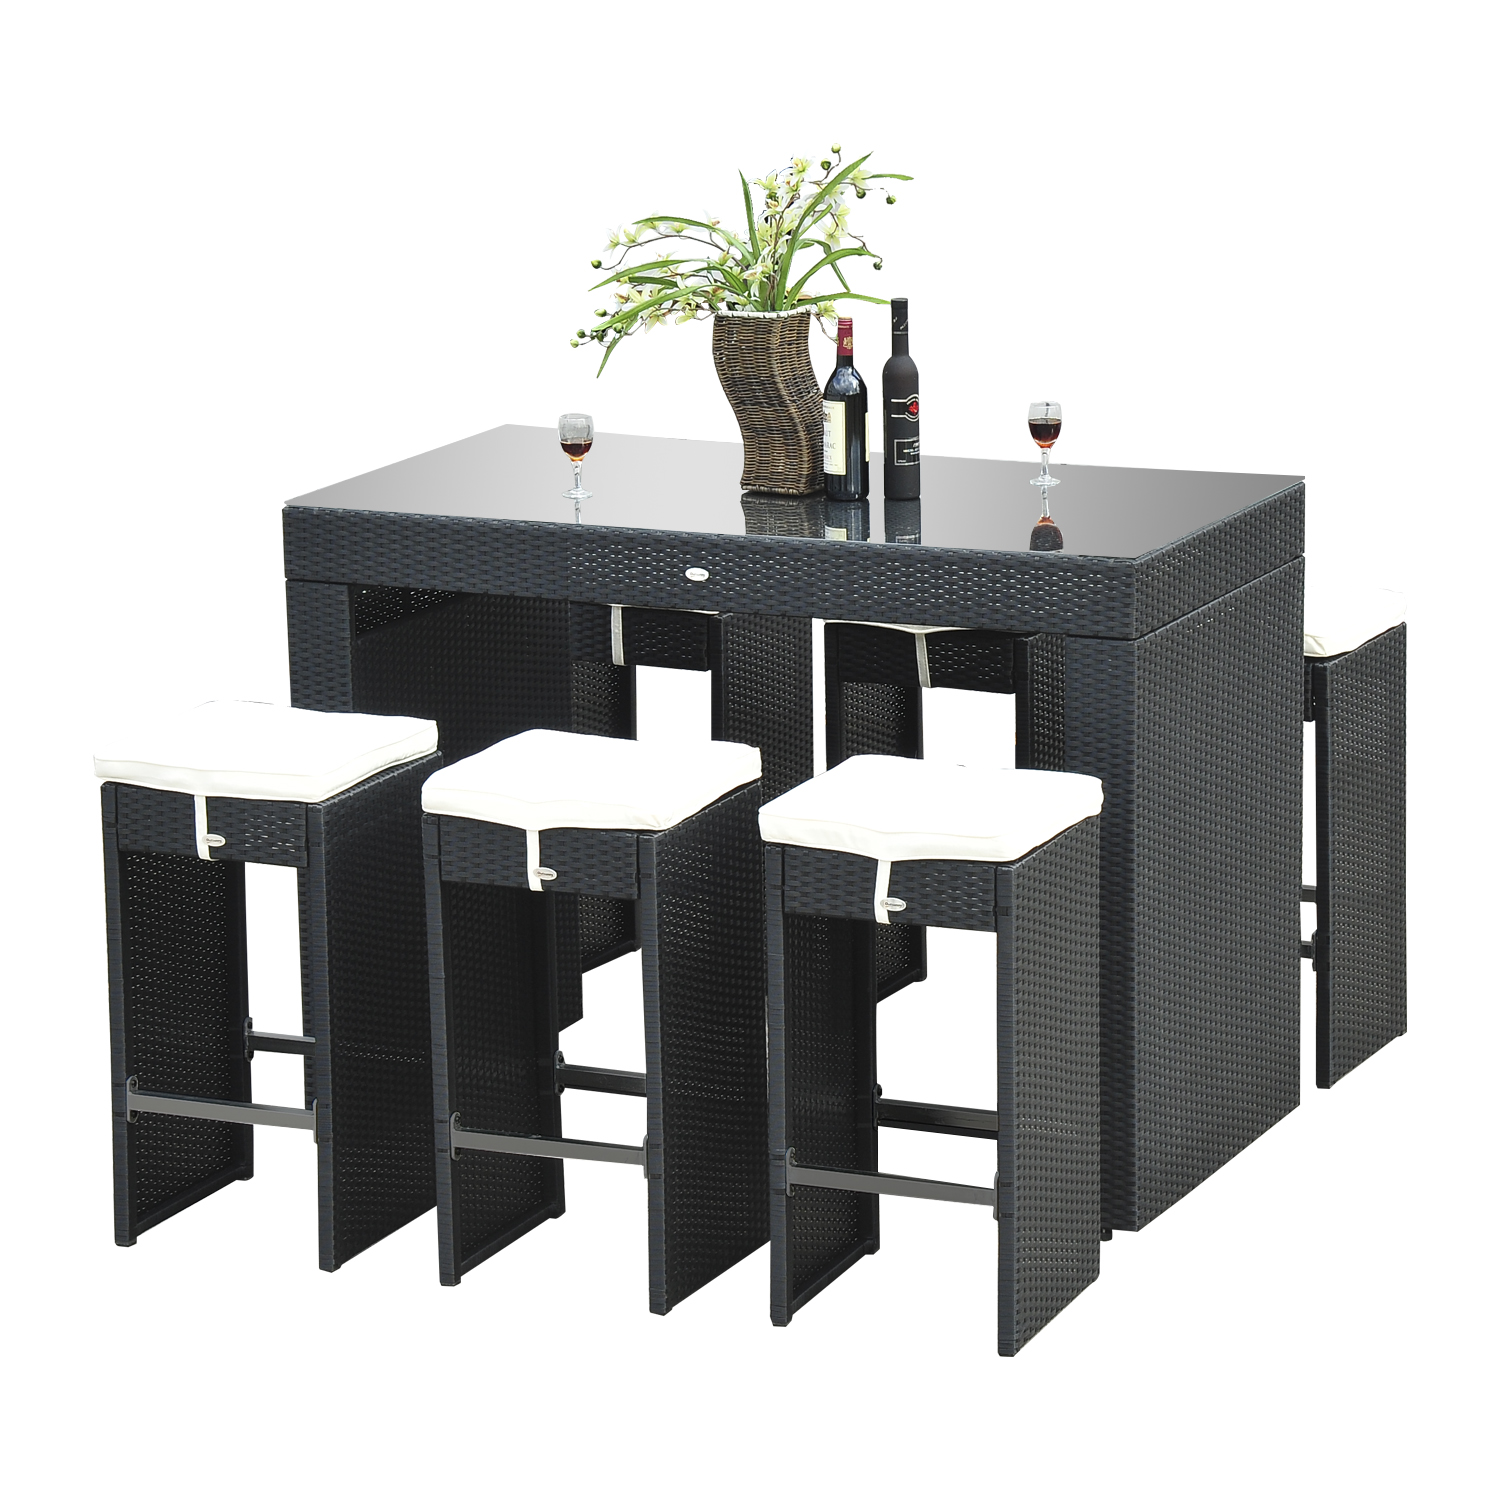 Outsunny 7pc Rattan Wicker Bar Stool Dining Table Set - Black